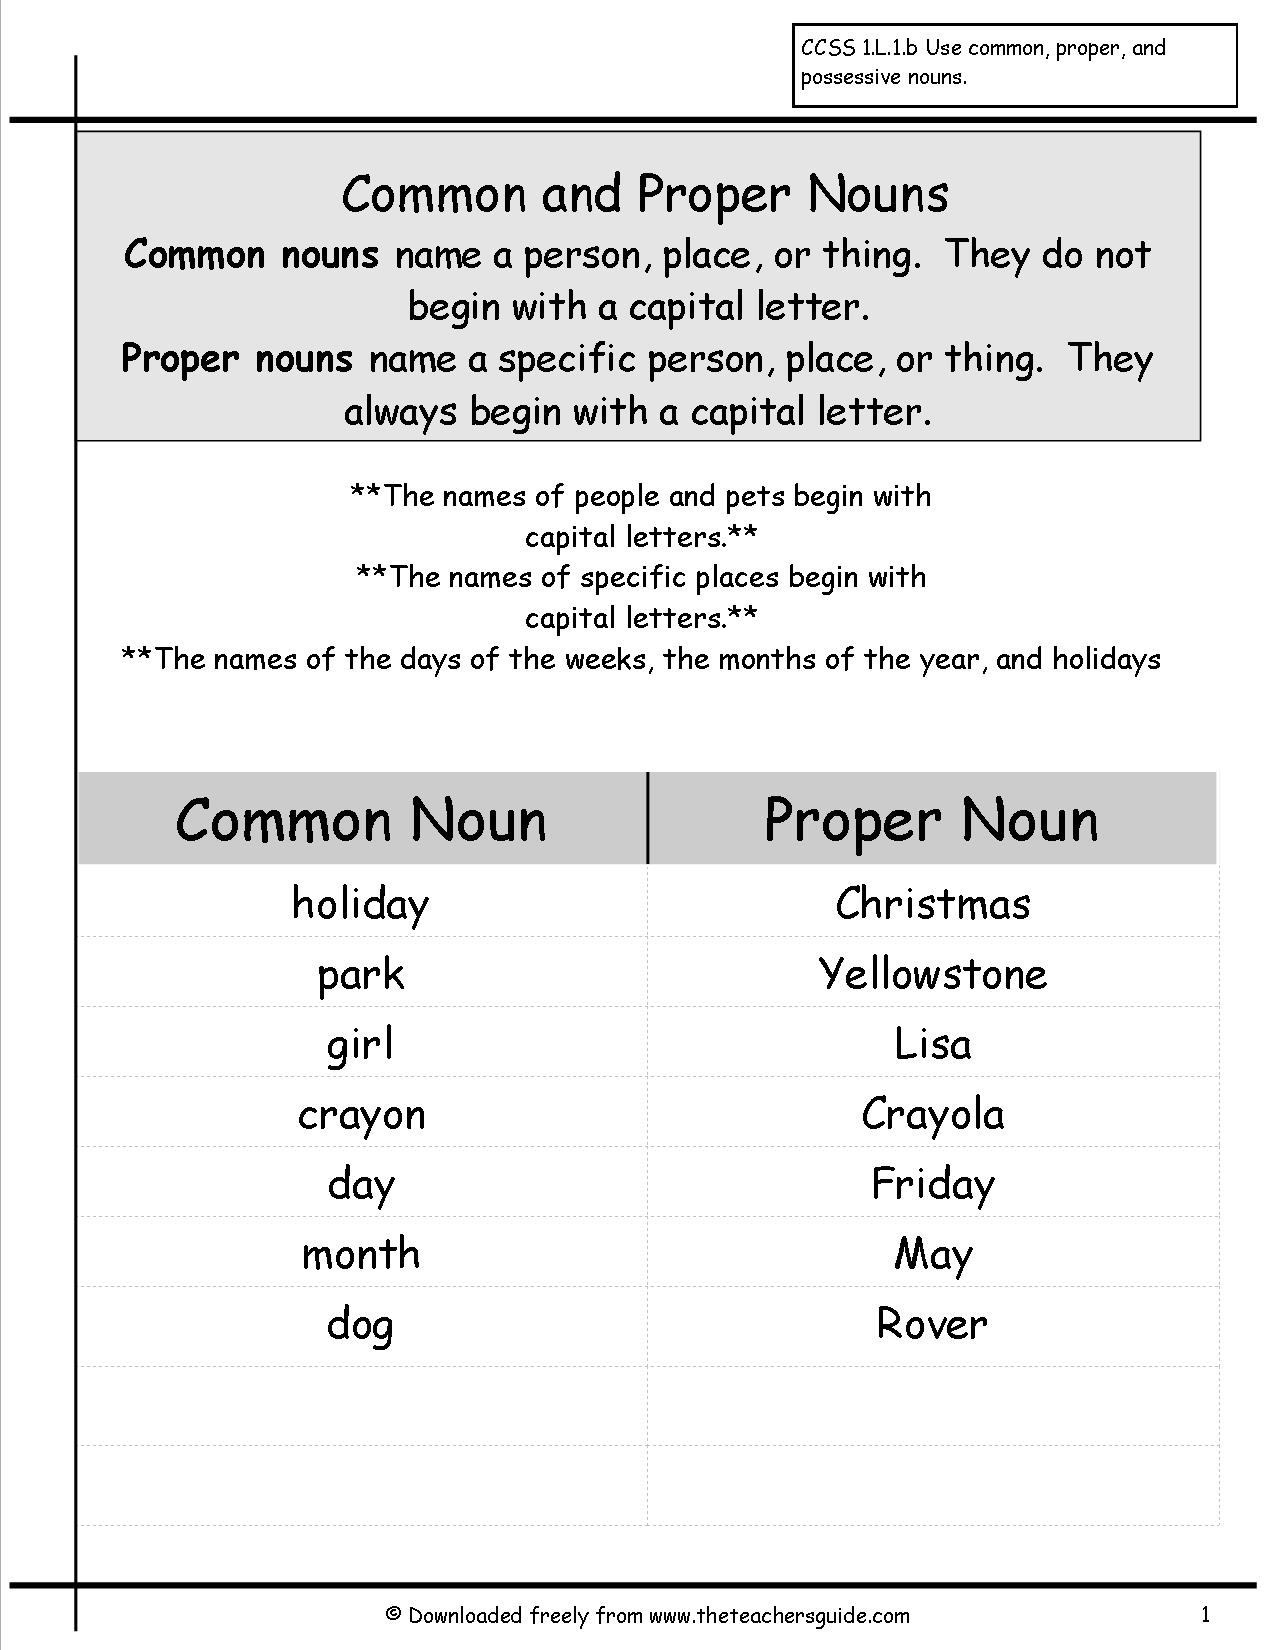 18 Best Images Of Common And Proper Noun Sort Worksheet